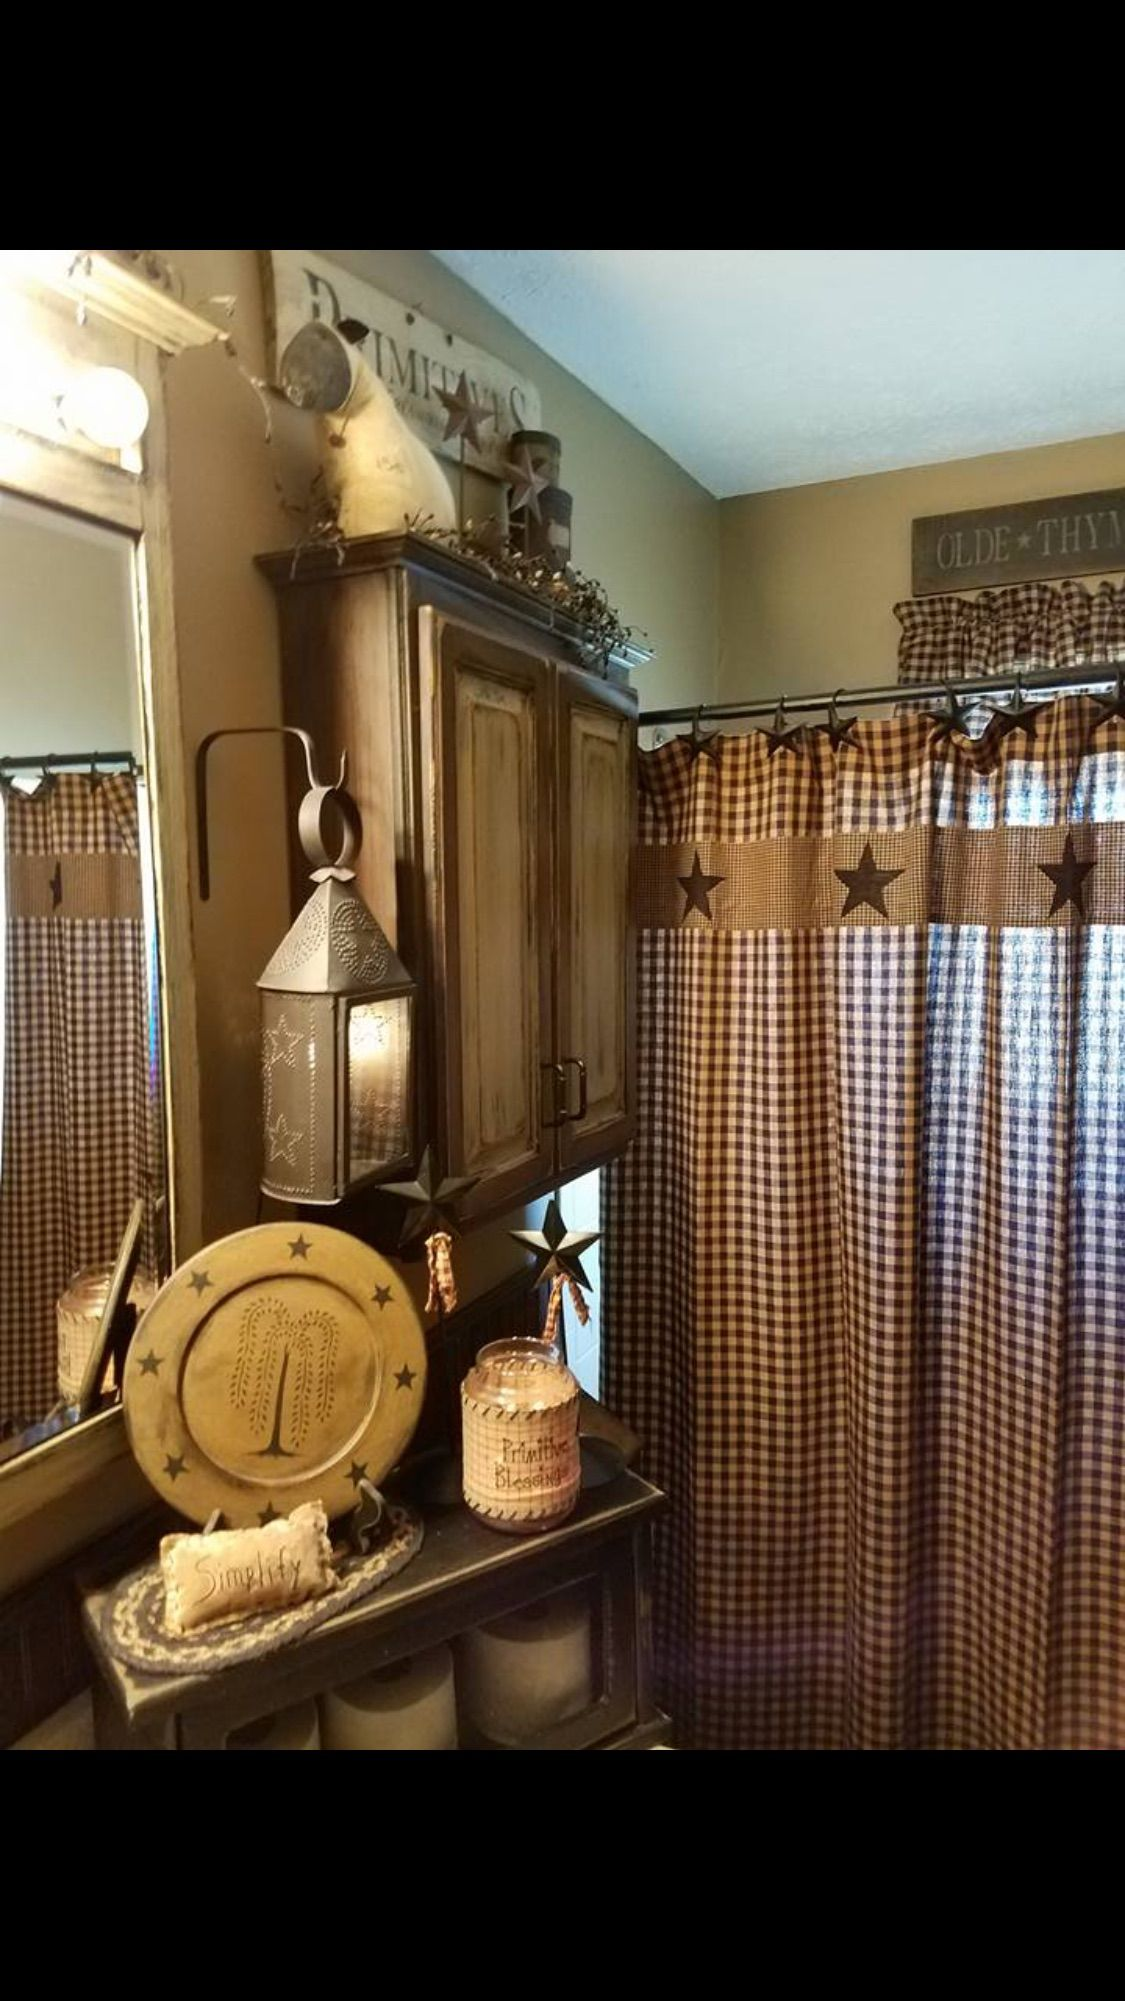 Best Bathroom Shower Curtains Home Decor That I Love This Month